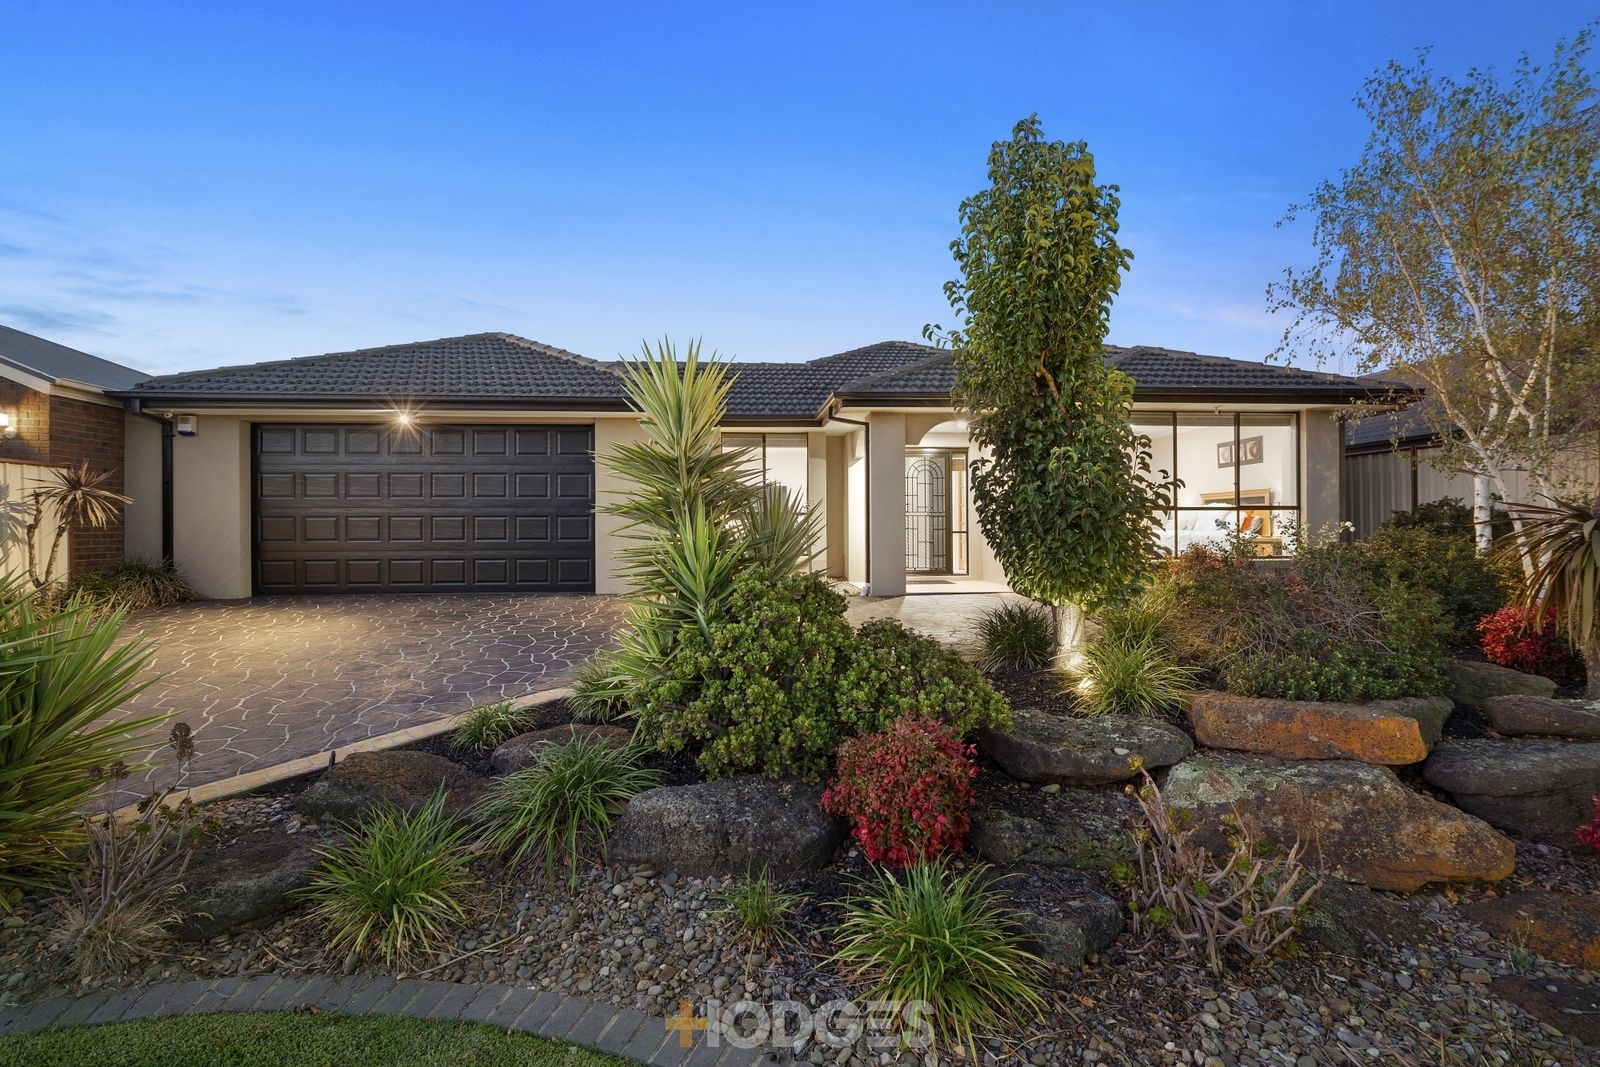 22 Phoenix Avenue, Hoppers Crossing VIC 3029, Image 1